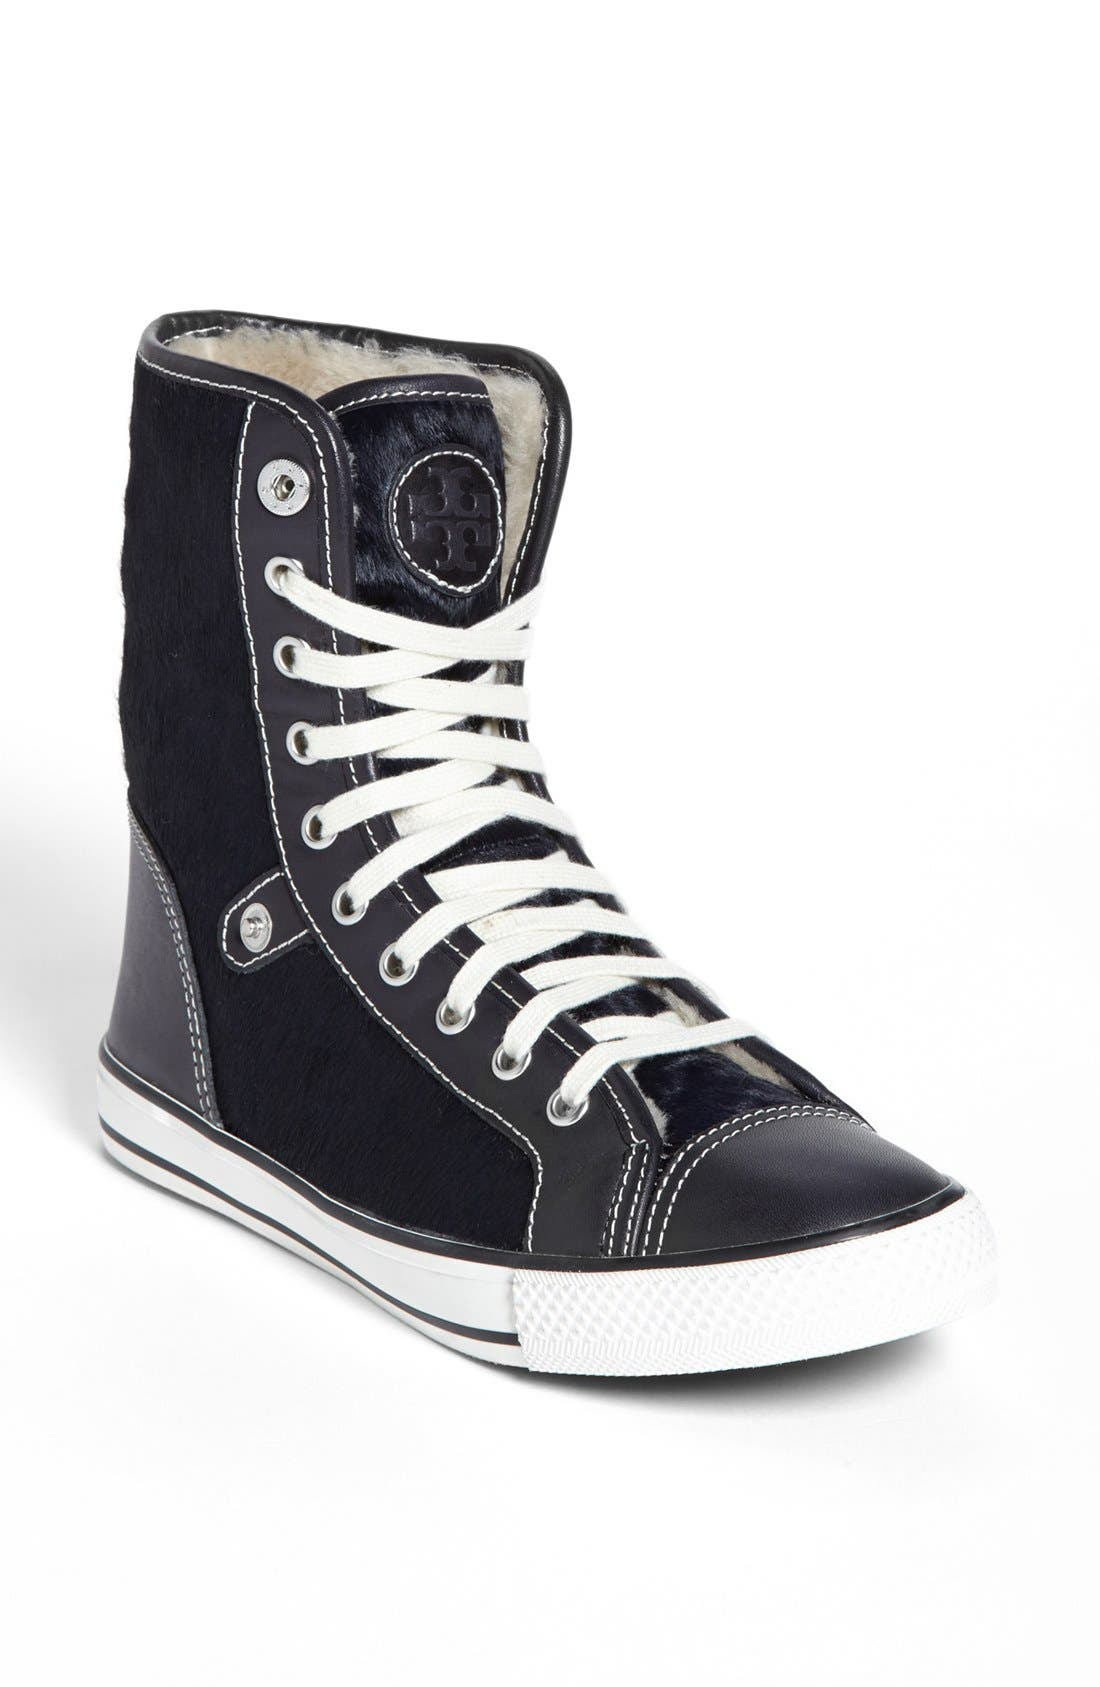 Main Image - Tory Burch 'Benjamin' High Top Sneaker